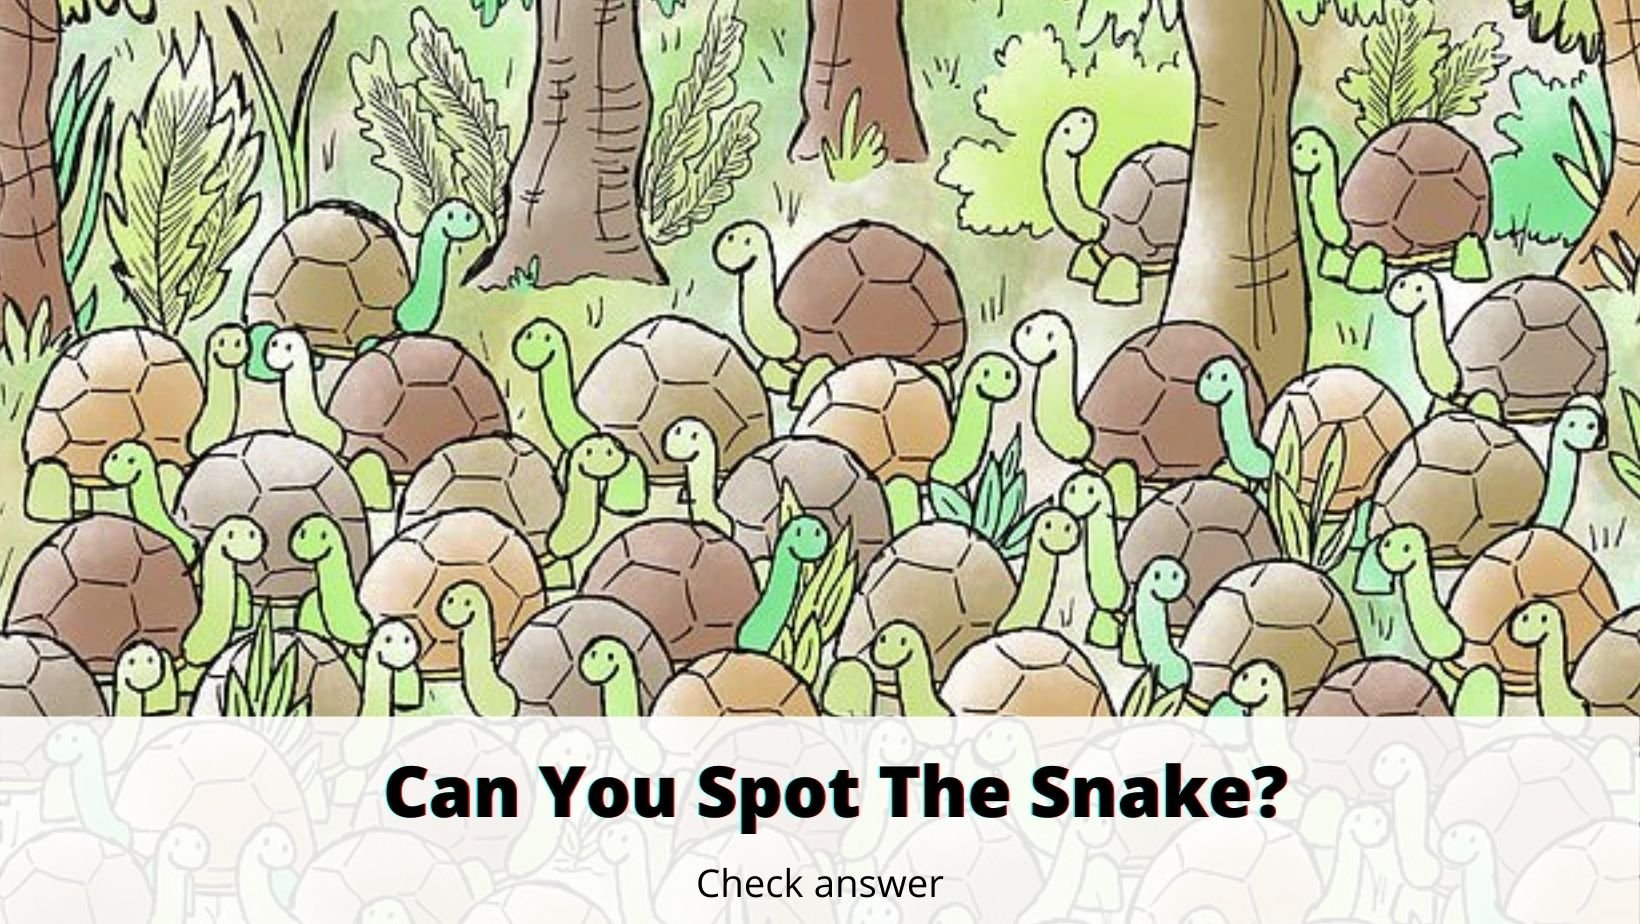 small joys thumbnail 6 2.jpg?resize=1200,630 - Can You Find The Snake Among The Turtles?